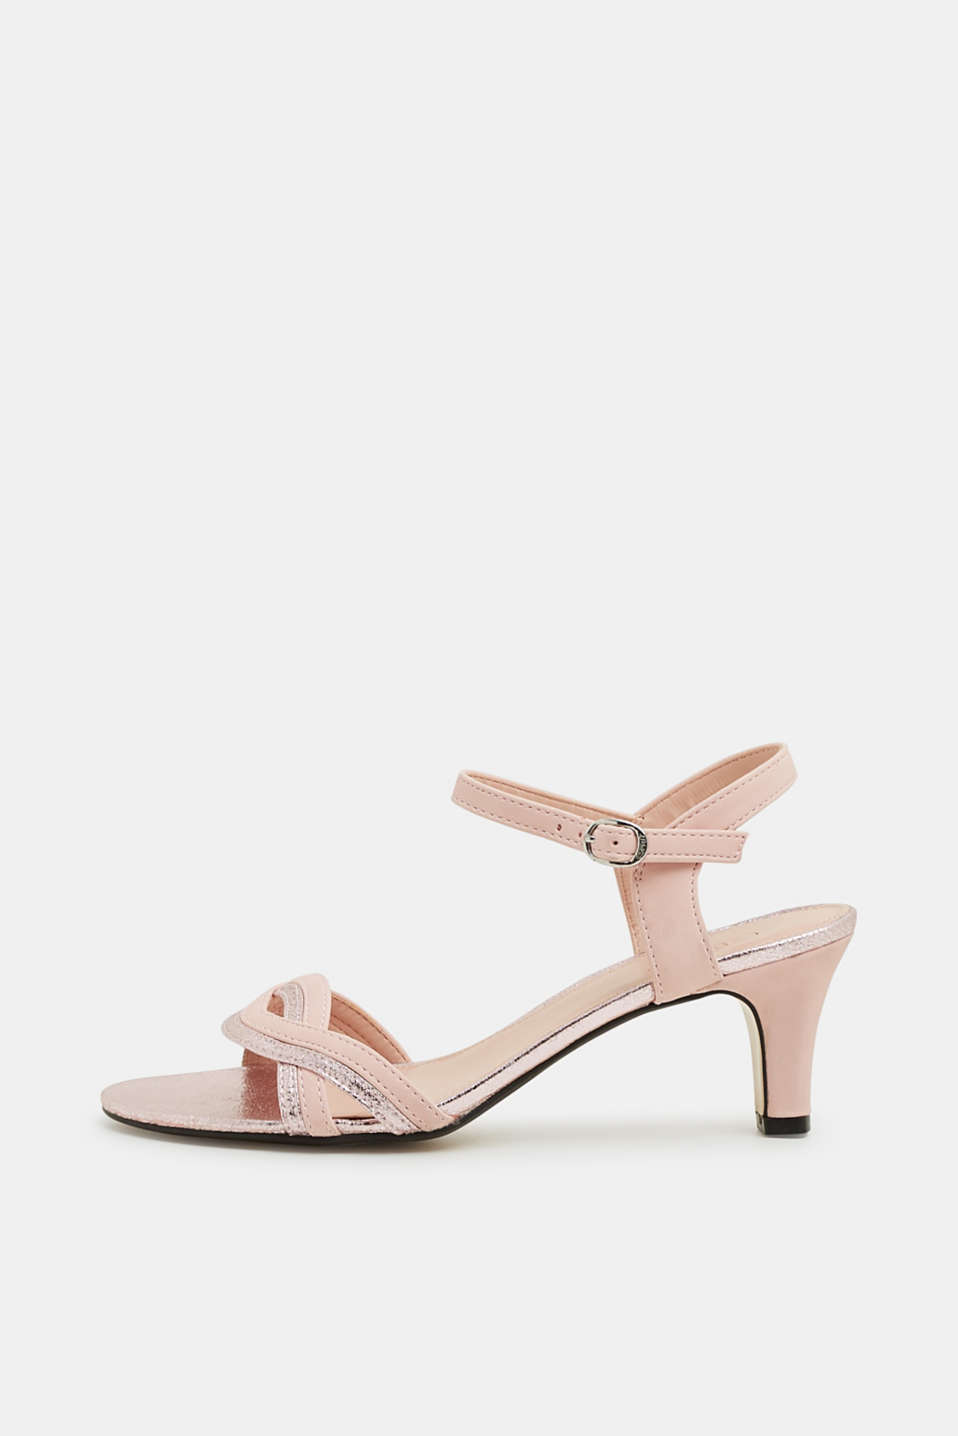 Esprit - Sandalen met metallic accenten, in een leerlook